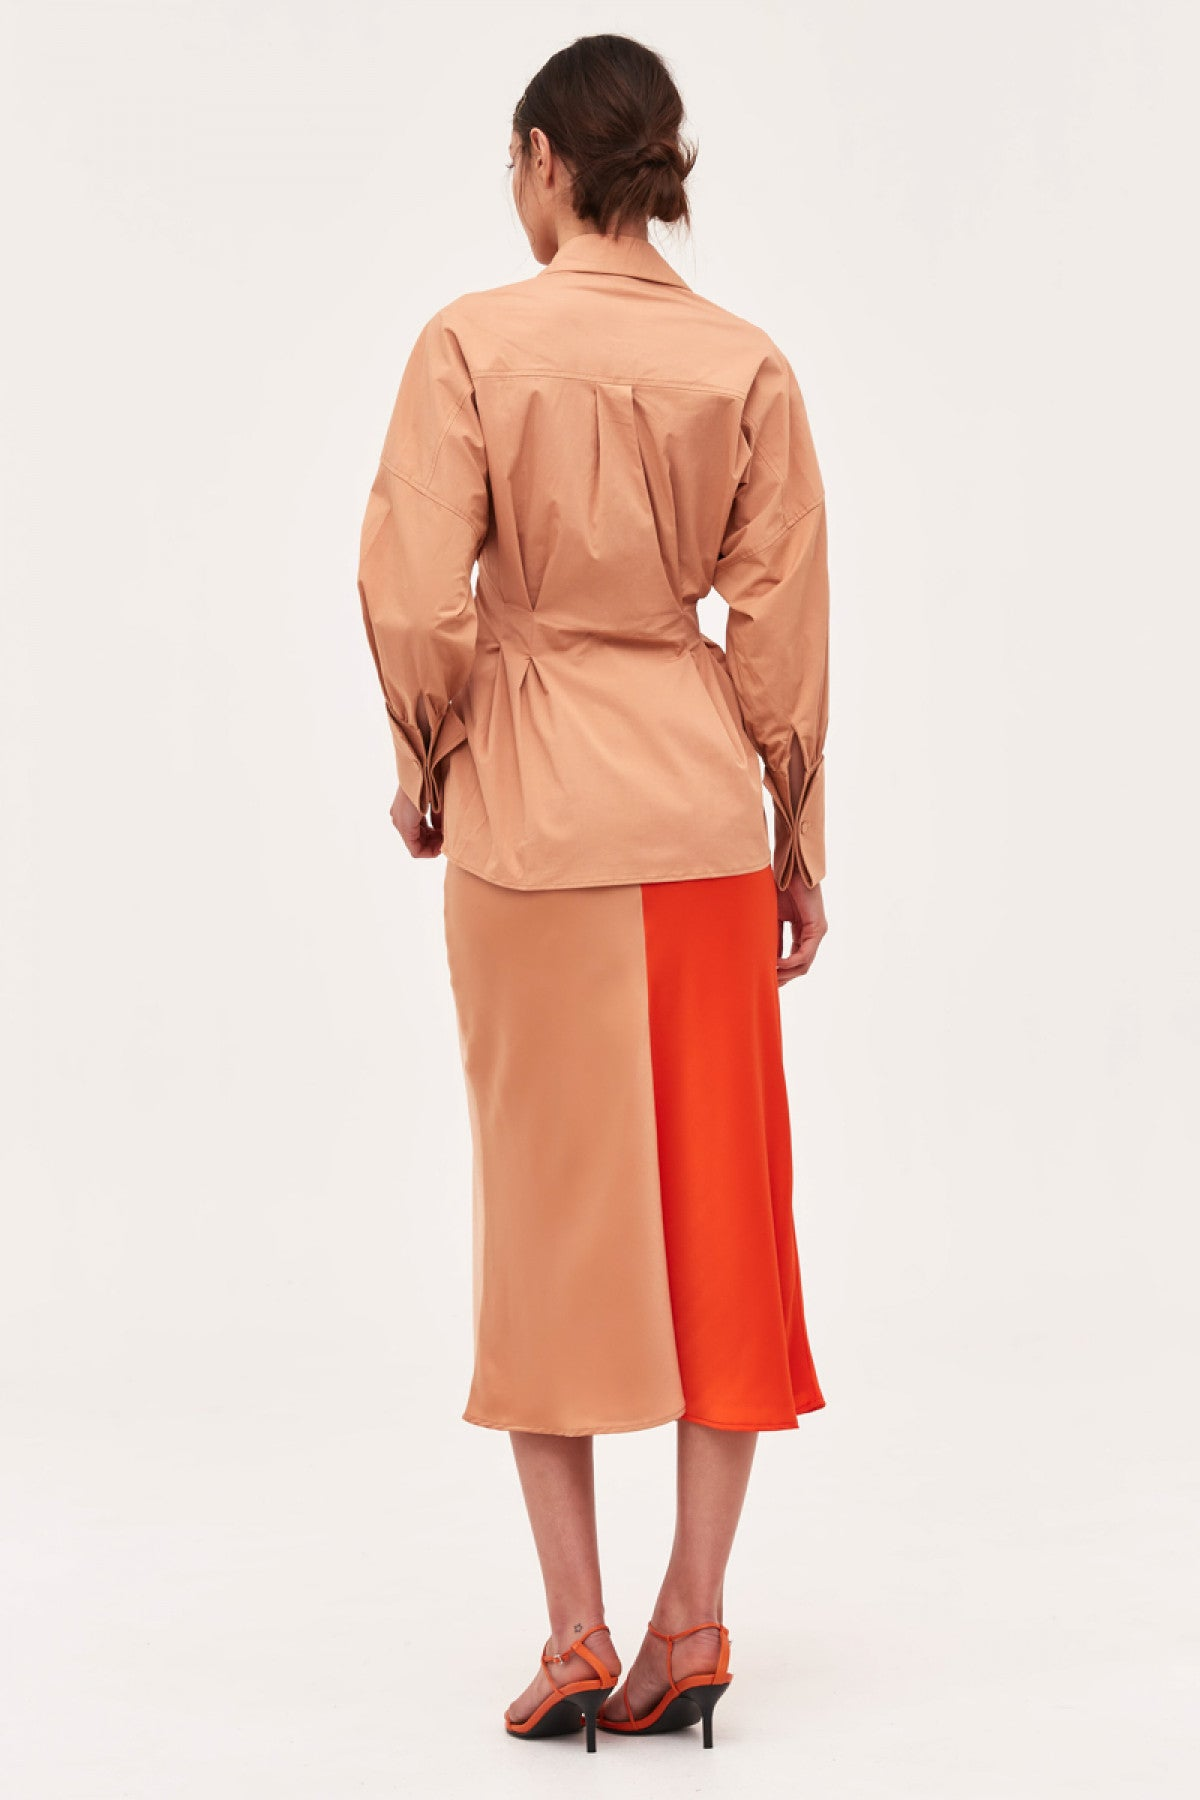 THOUGHTFUL SKIRT vermilion w tan